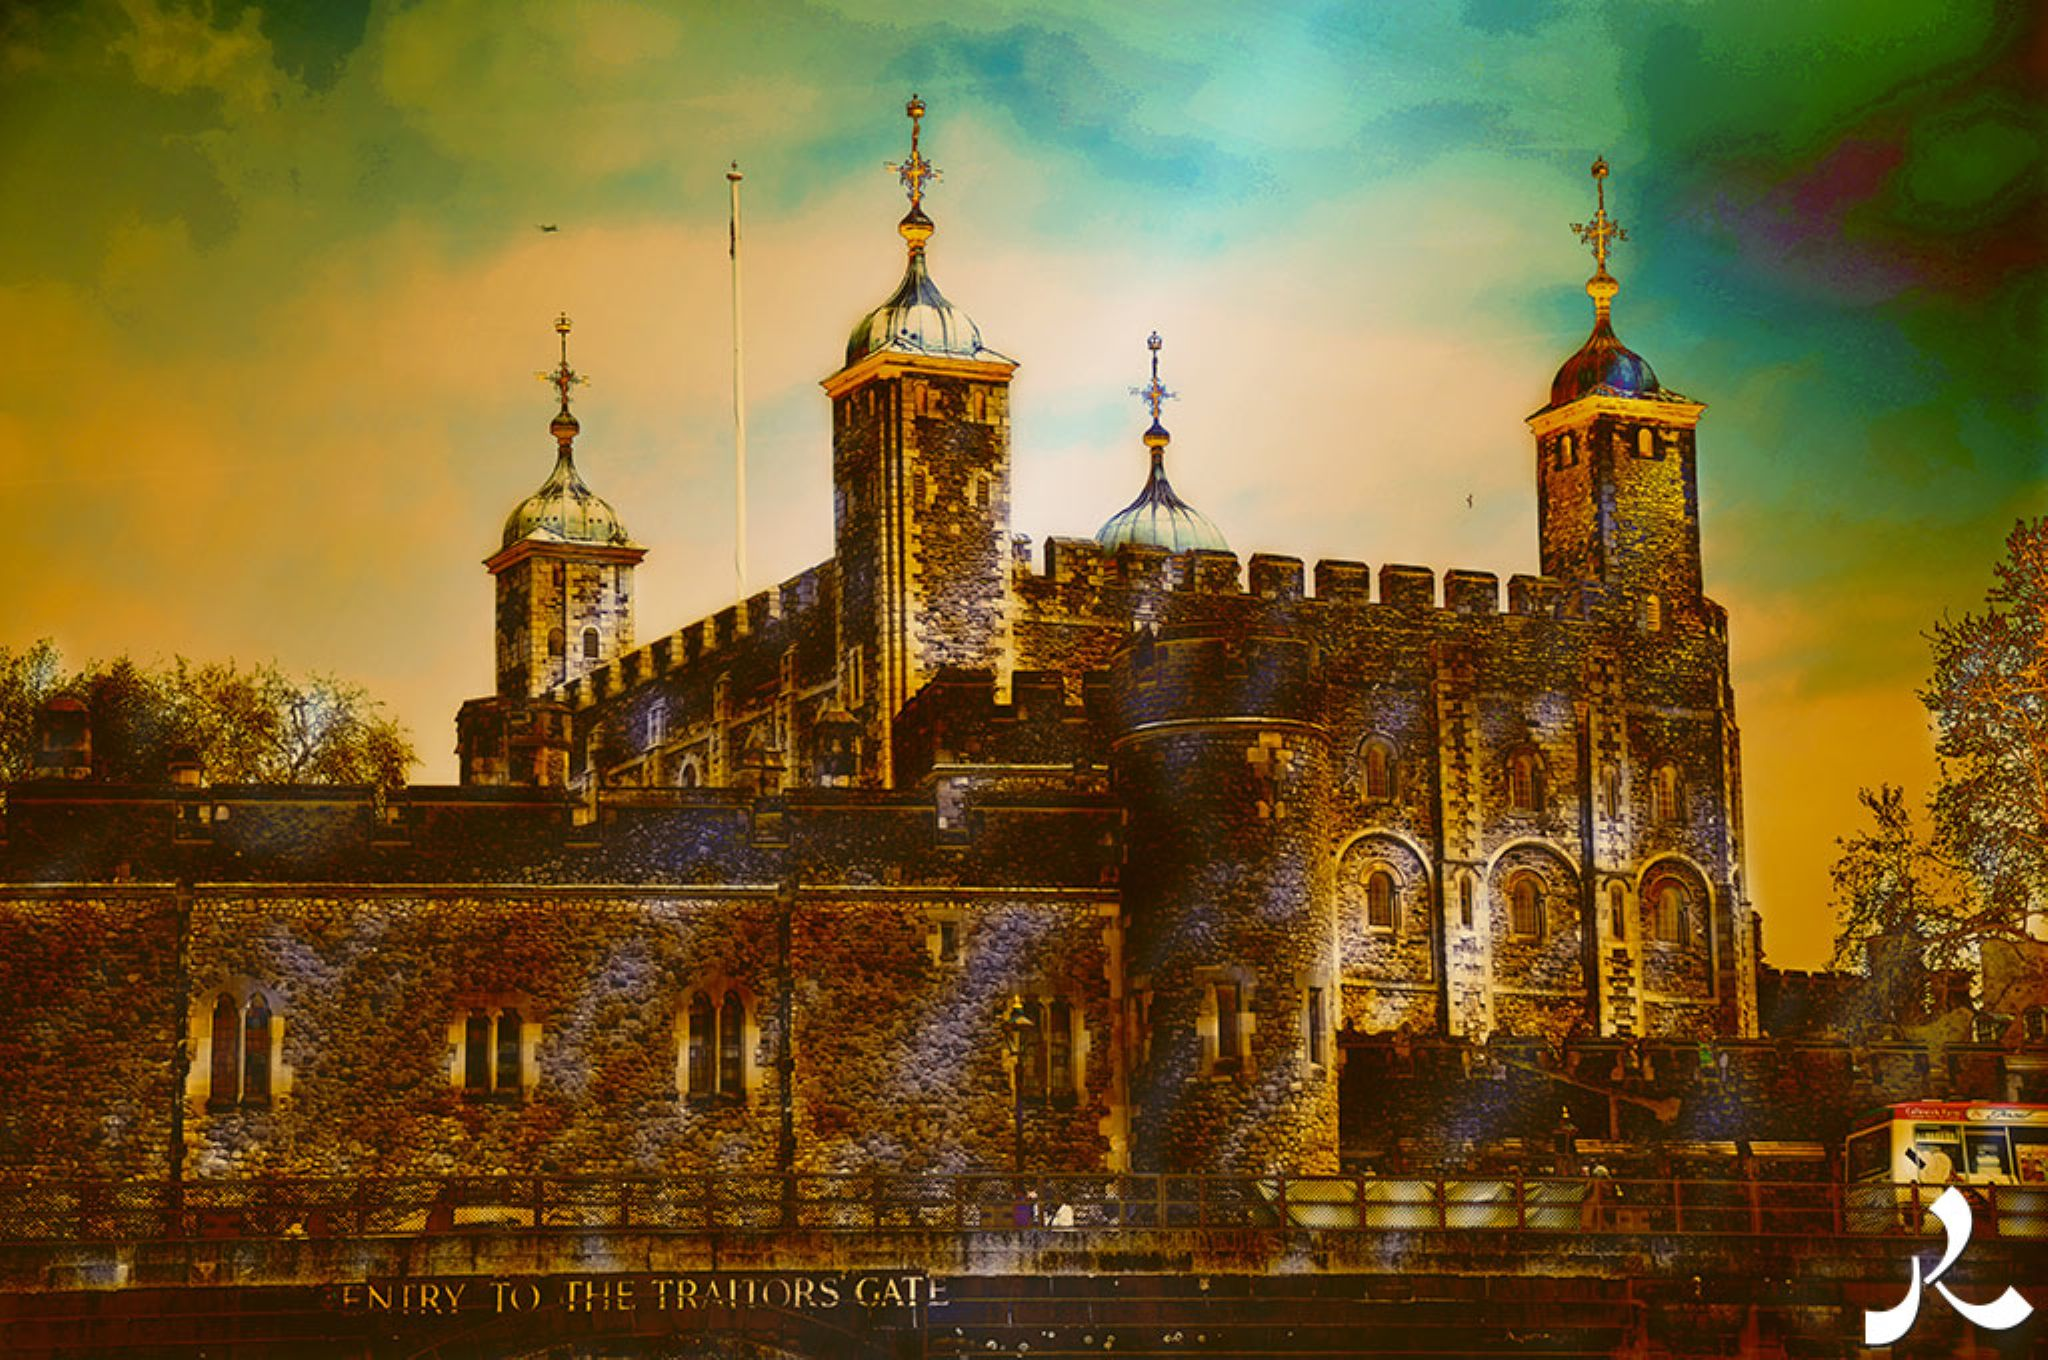 TowerOfLondon57-14iwor by Raffin